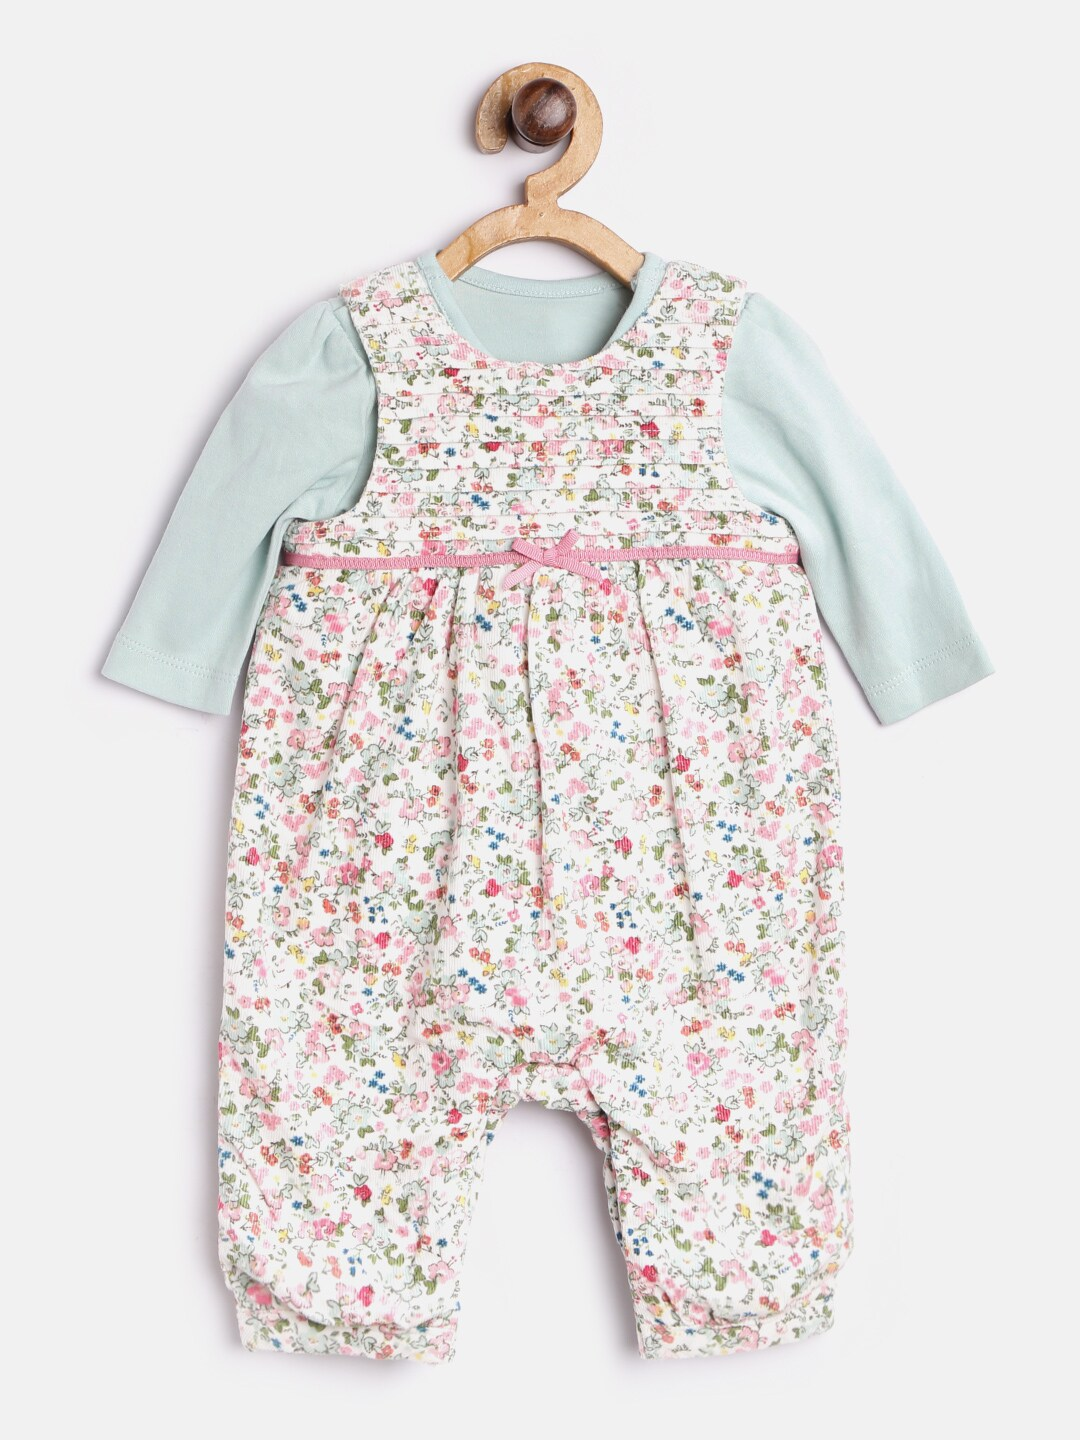 3b379407d Mothercare Girls - Buy Mothercare Girls online in India